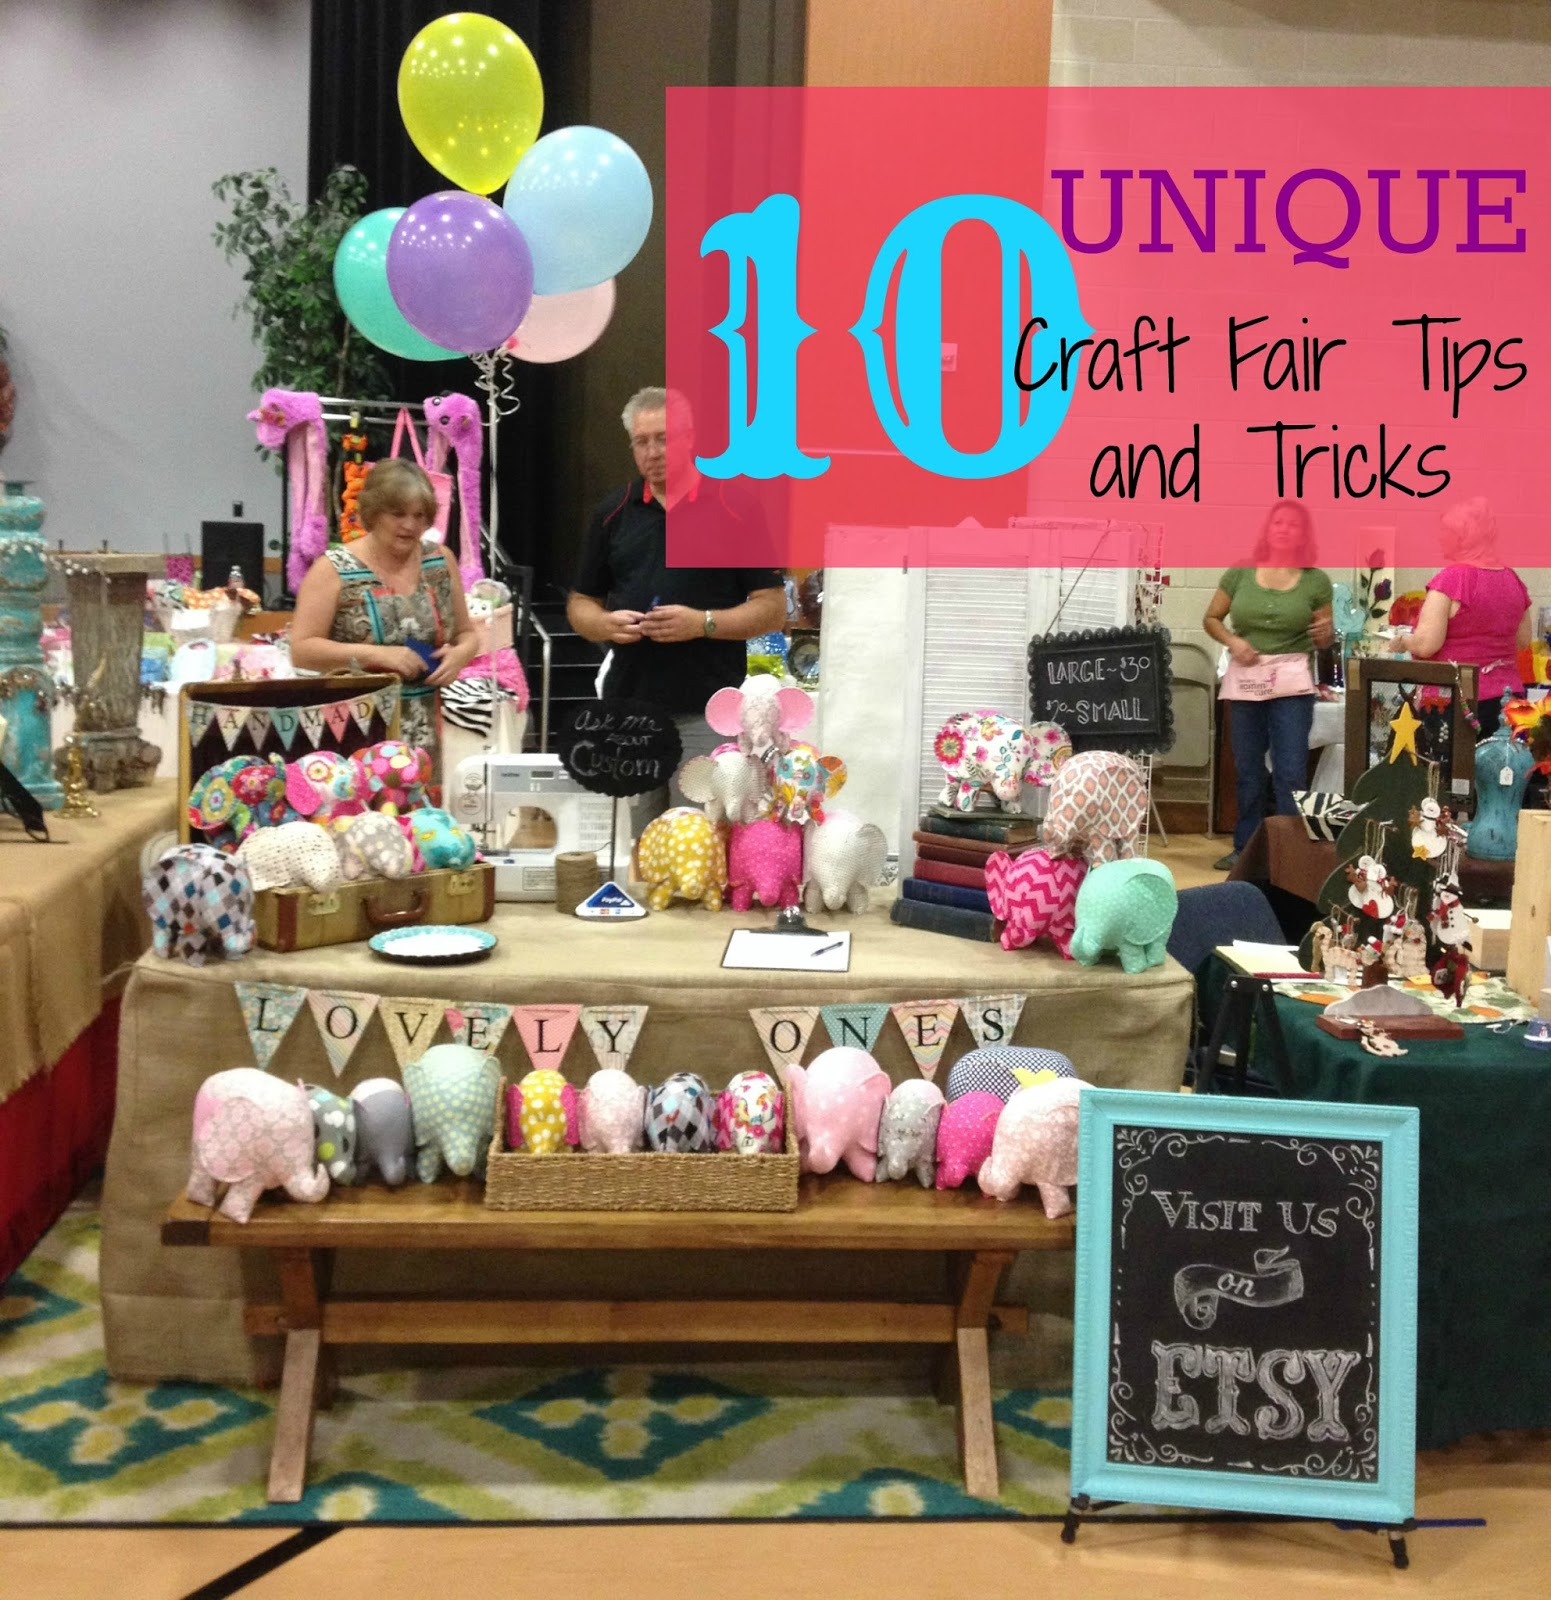 craft show display ideas 10 unique craft fair tips and tricks 4047